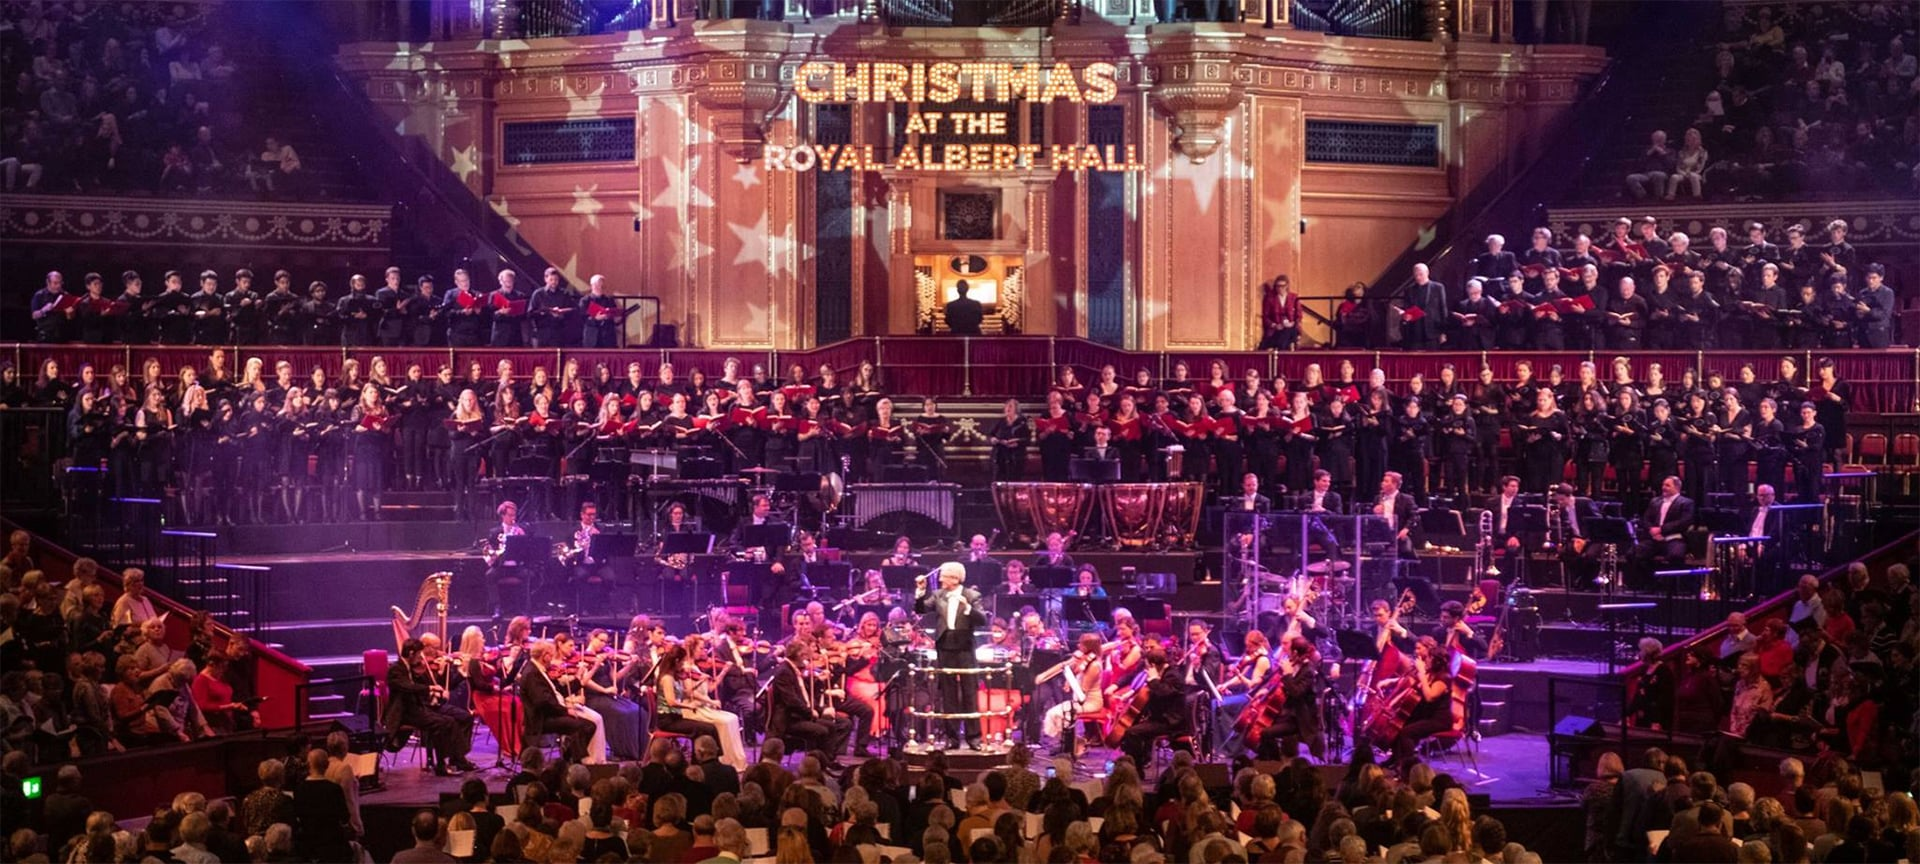 The Royal Choral Society returned to their spiritual home at the Royal Albert Hall with a festive programme packed full of glorious carols old and new. Did you know that the 150-strong choir has sung at the Hall every Christmas for over a hundred years?